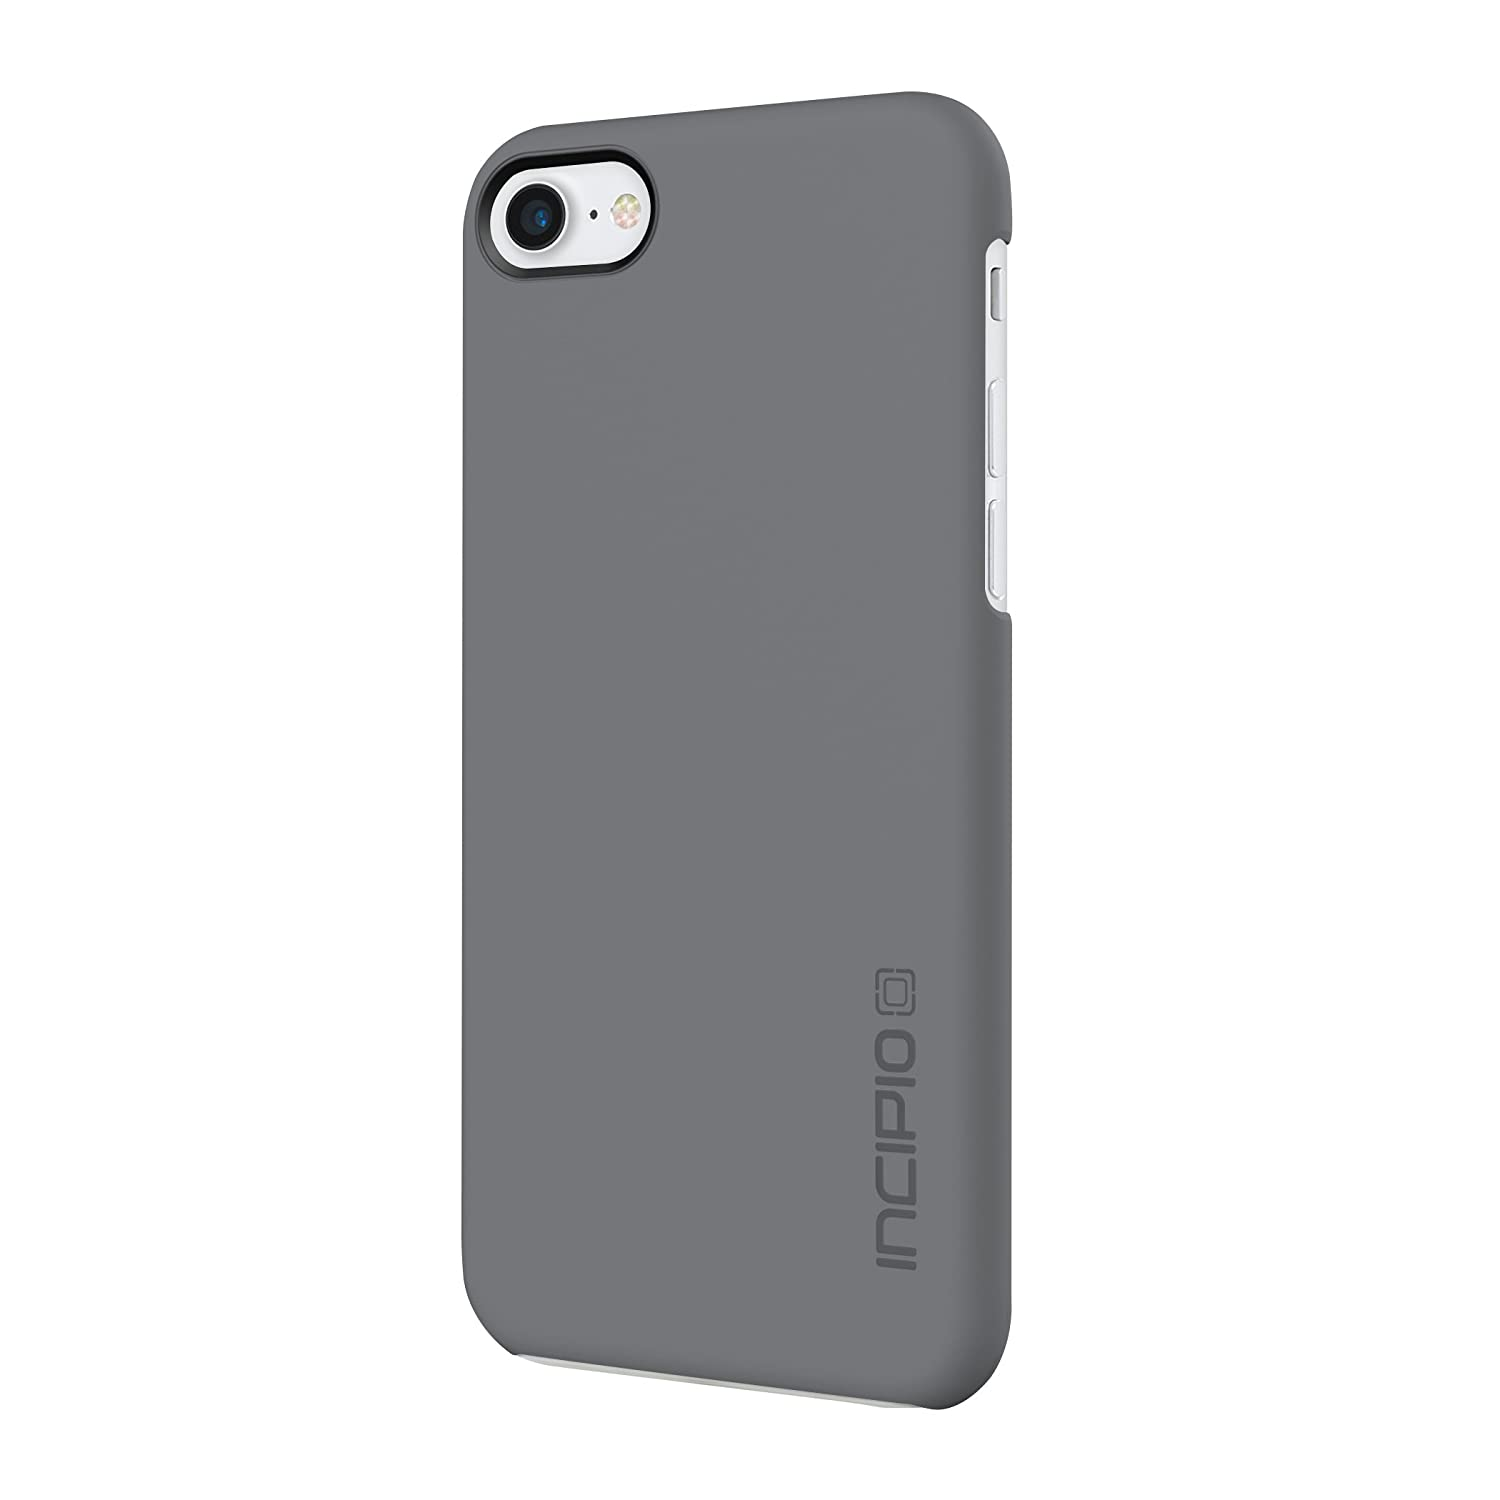 best service 2e0b3 4806a iPhone 7 Case, Incipio Feather Case [Ultra-Thin][Lightweight] Cover fits  Apple iPhone 7 - Gray